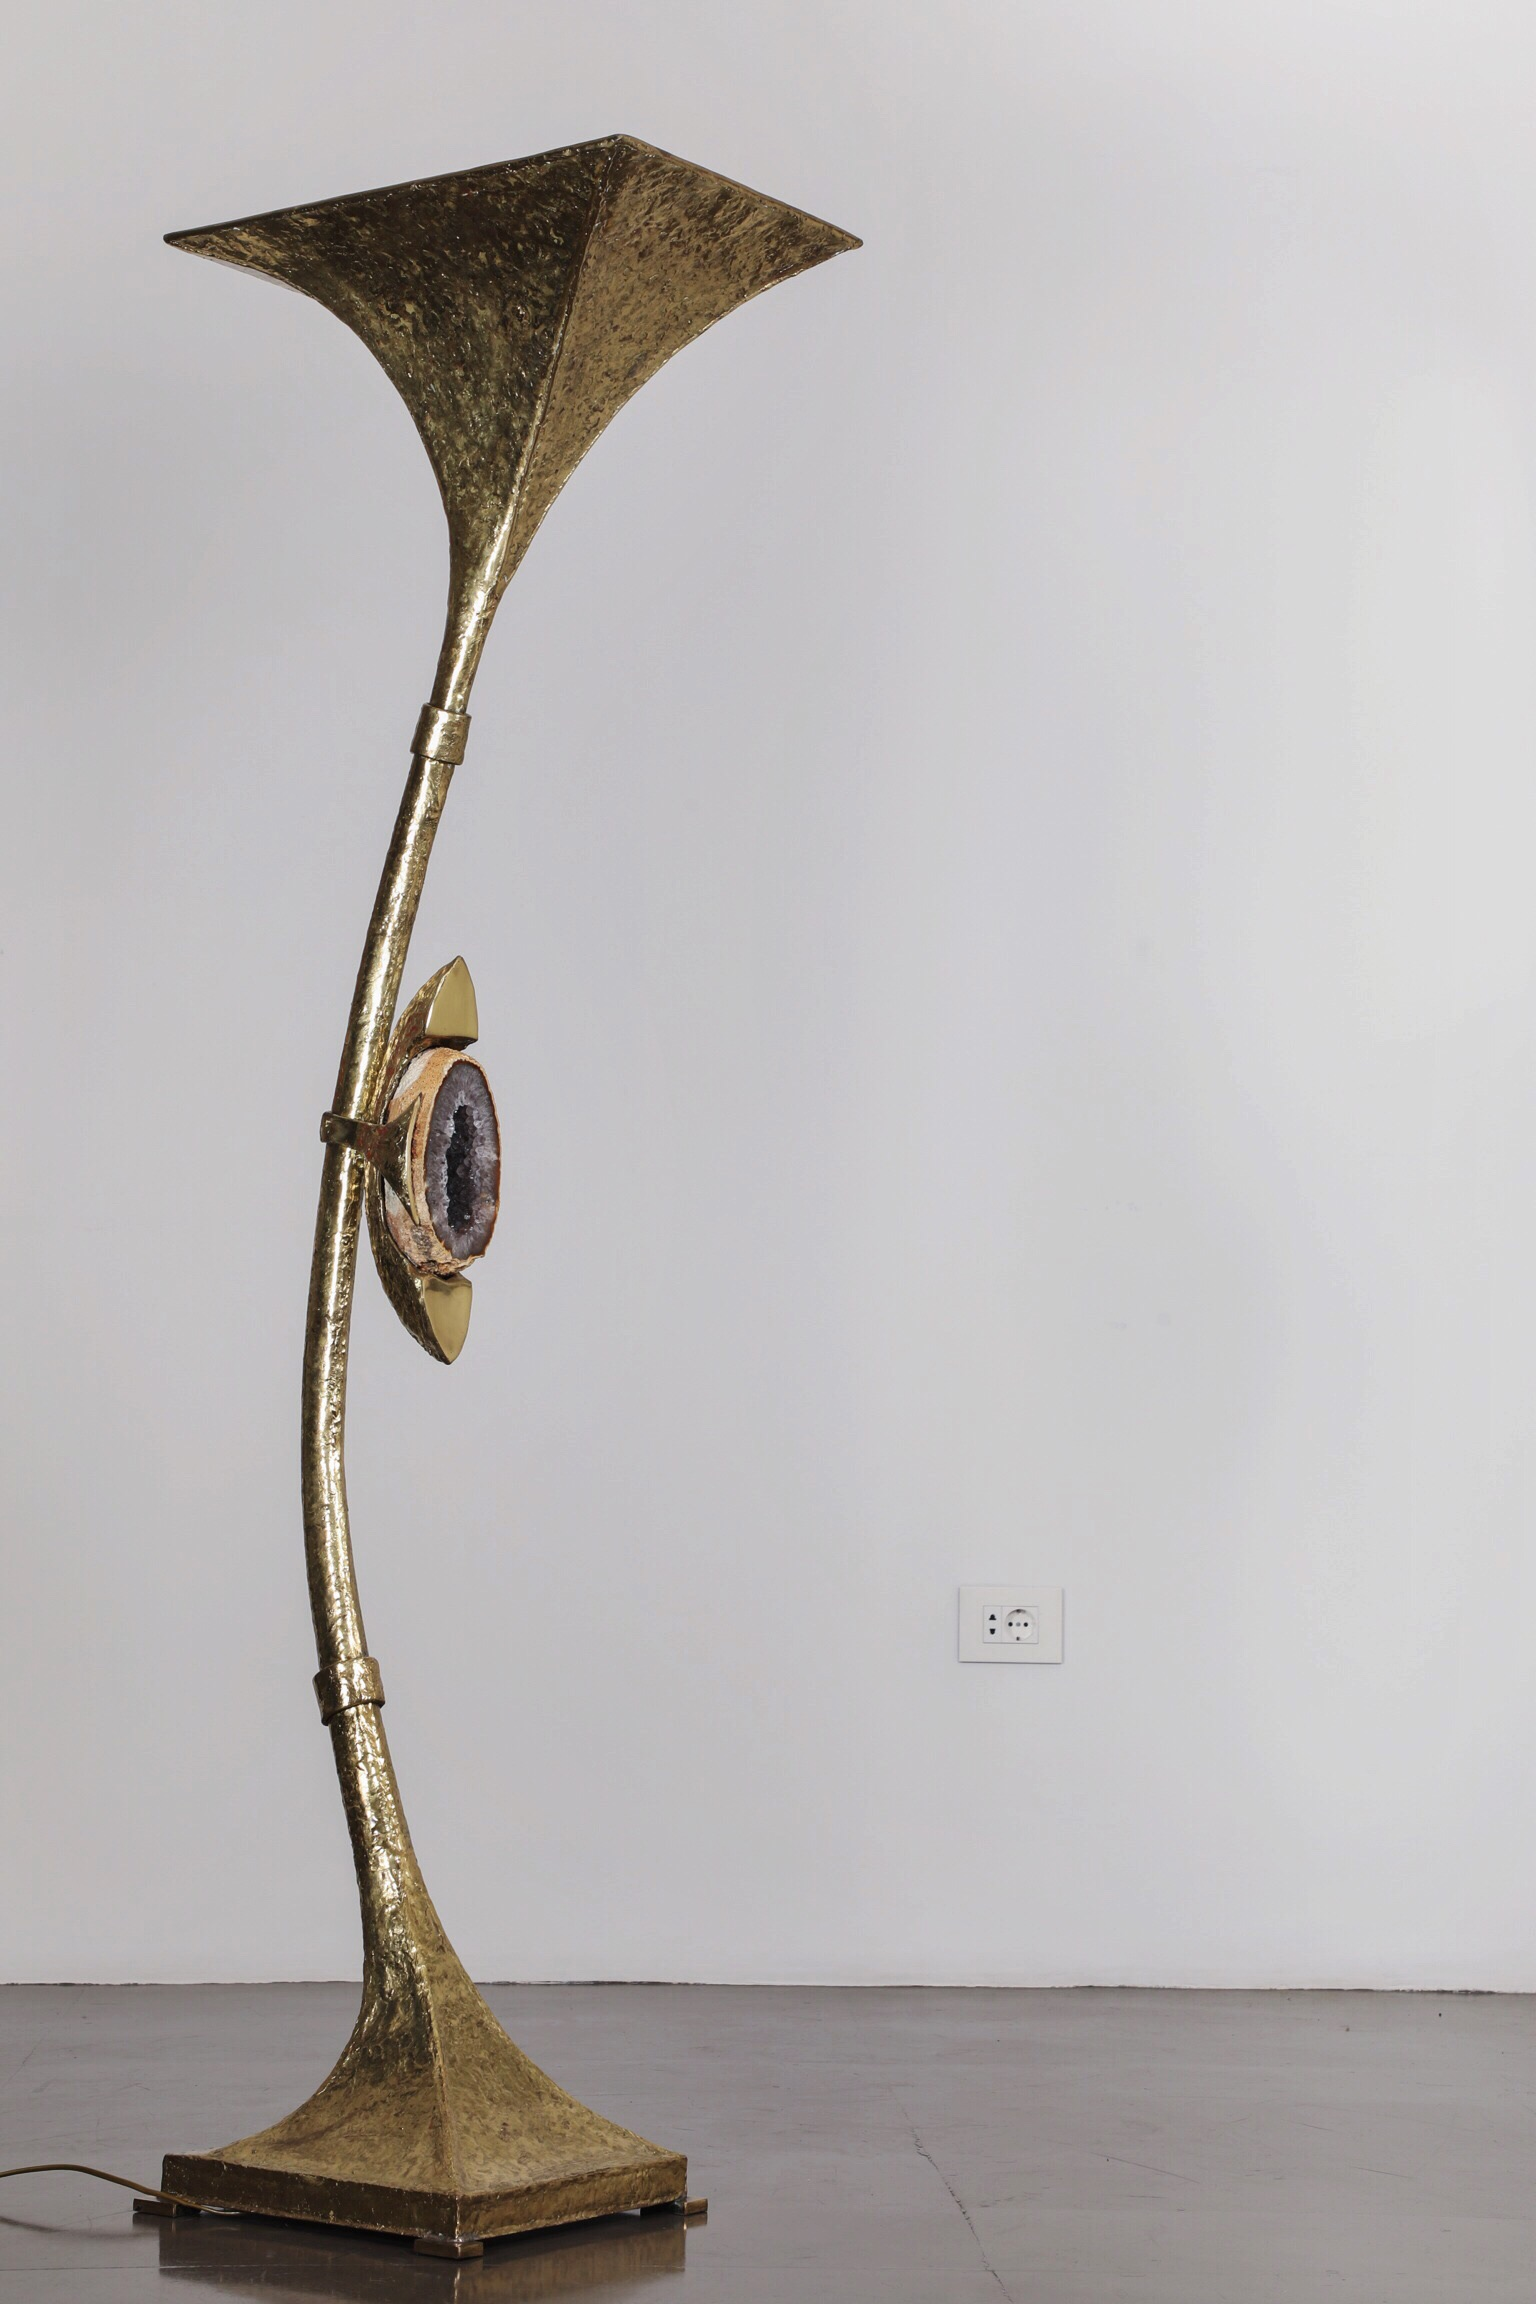 Halogene Geode - 2013Brass and glass180 cm